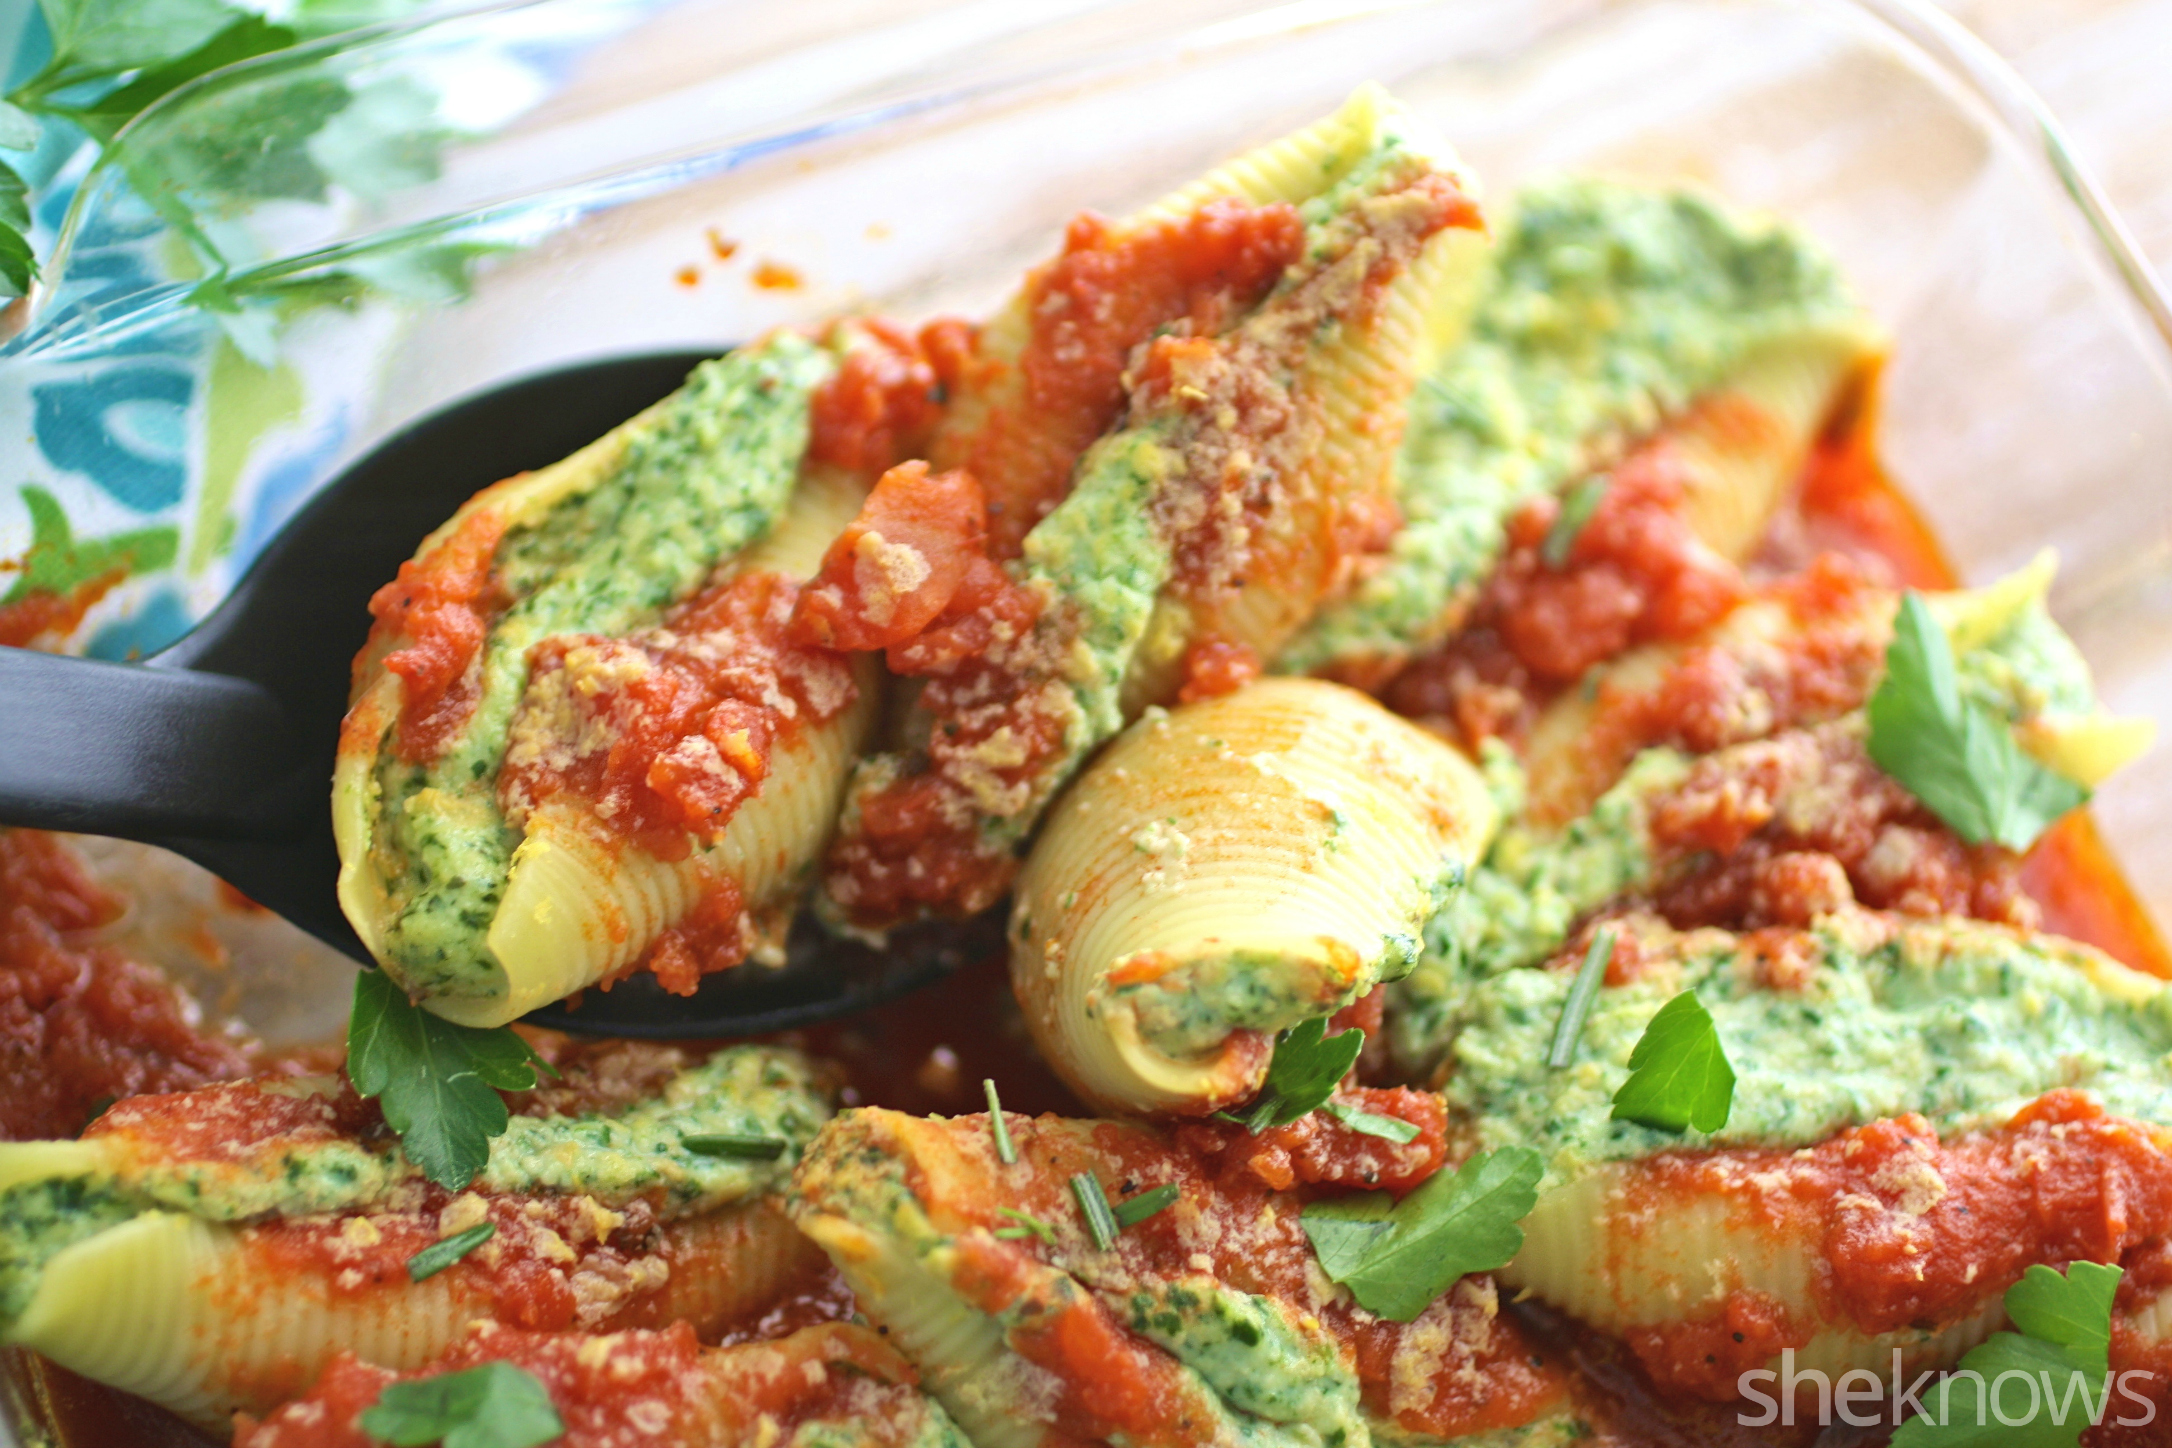 You'll want to scoop out several of these vegan stuffed shells with cashew ricotta cheese and spinach